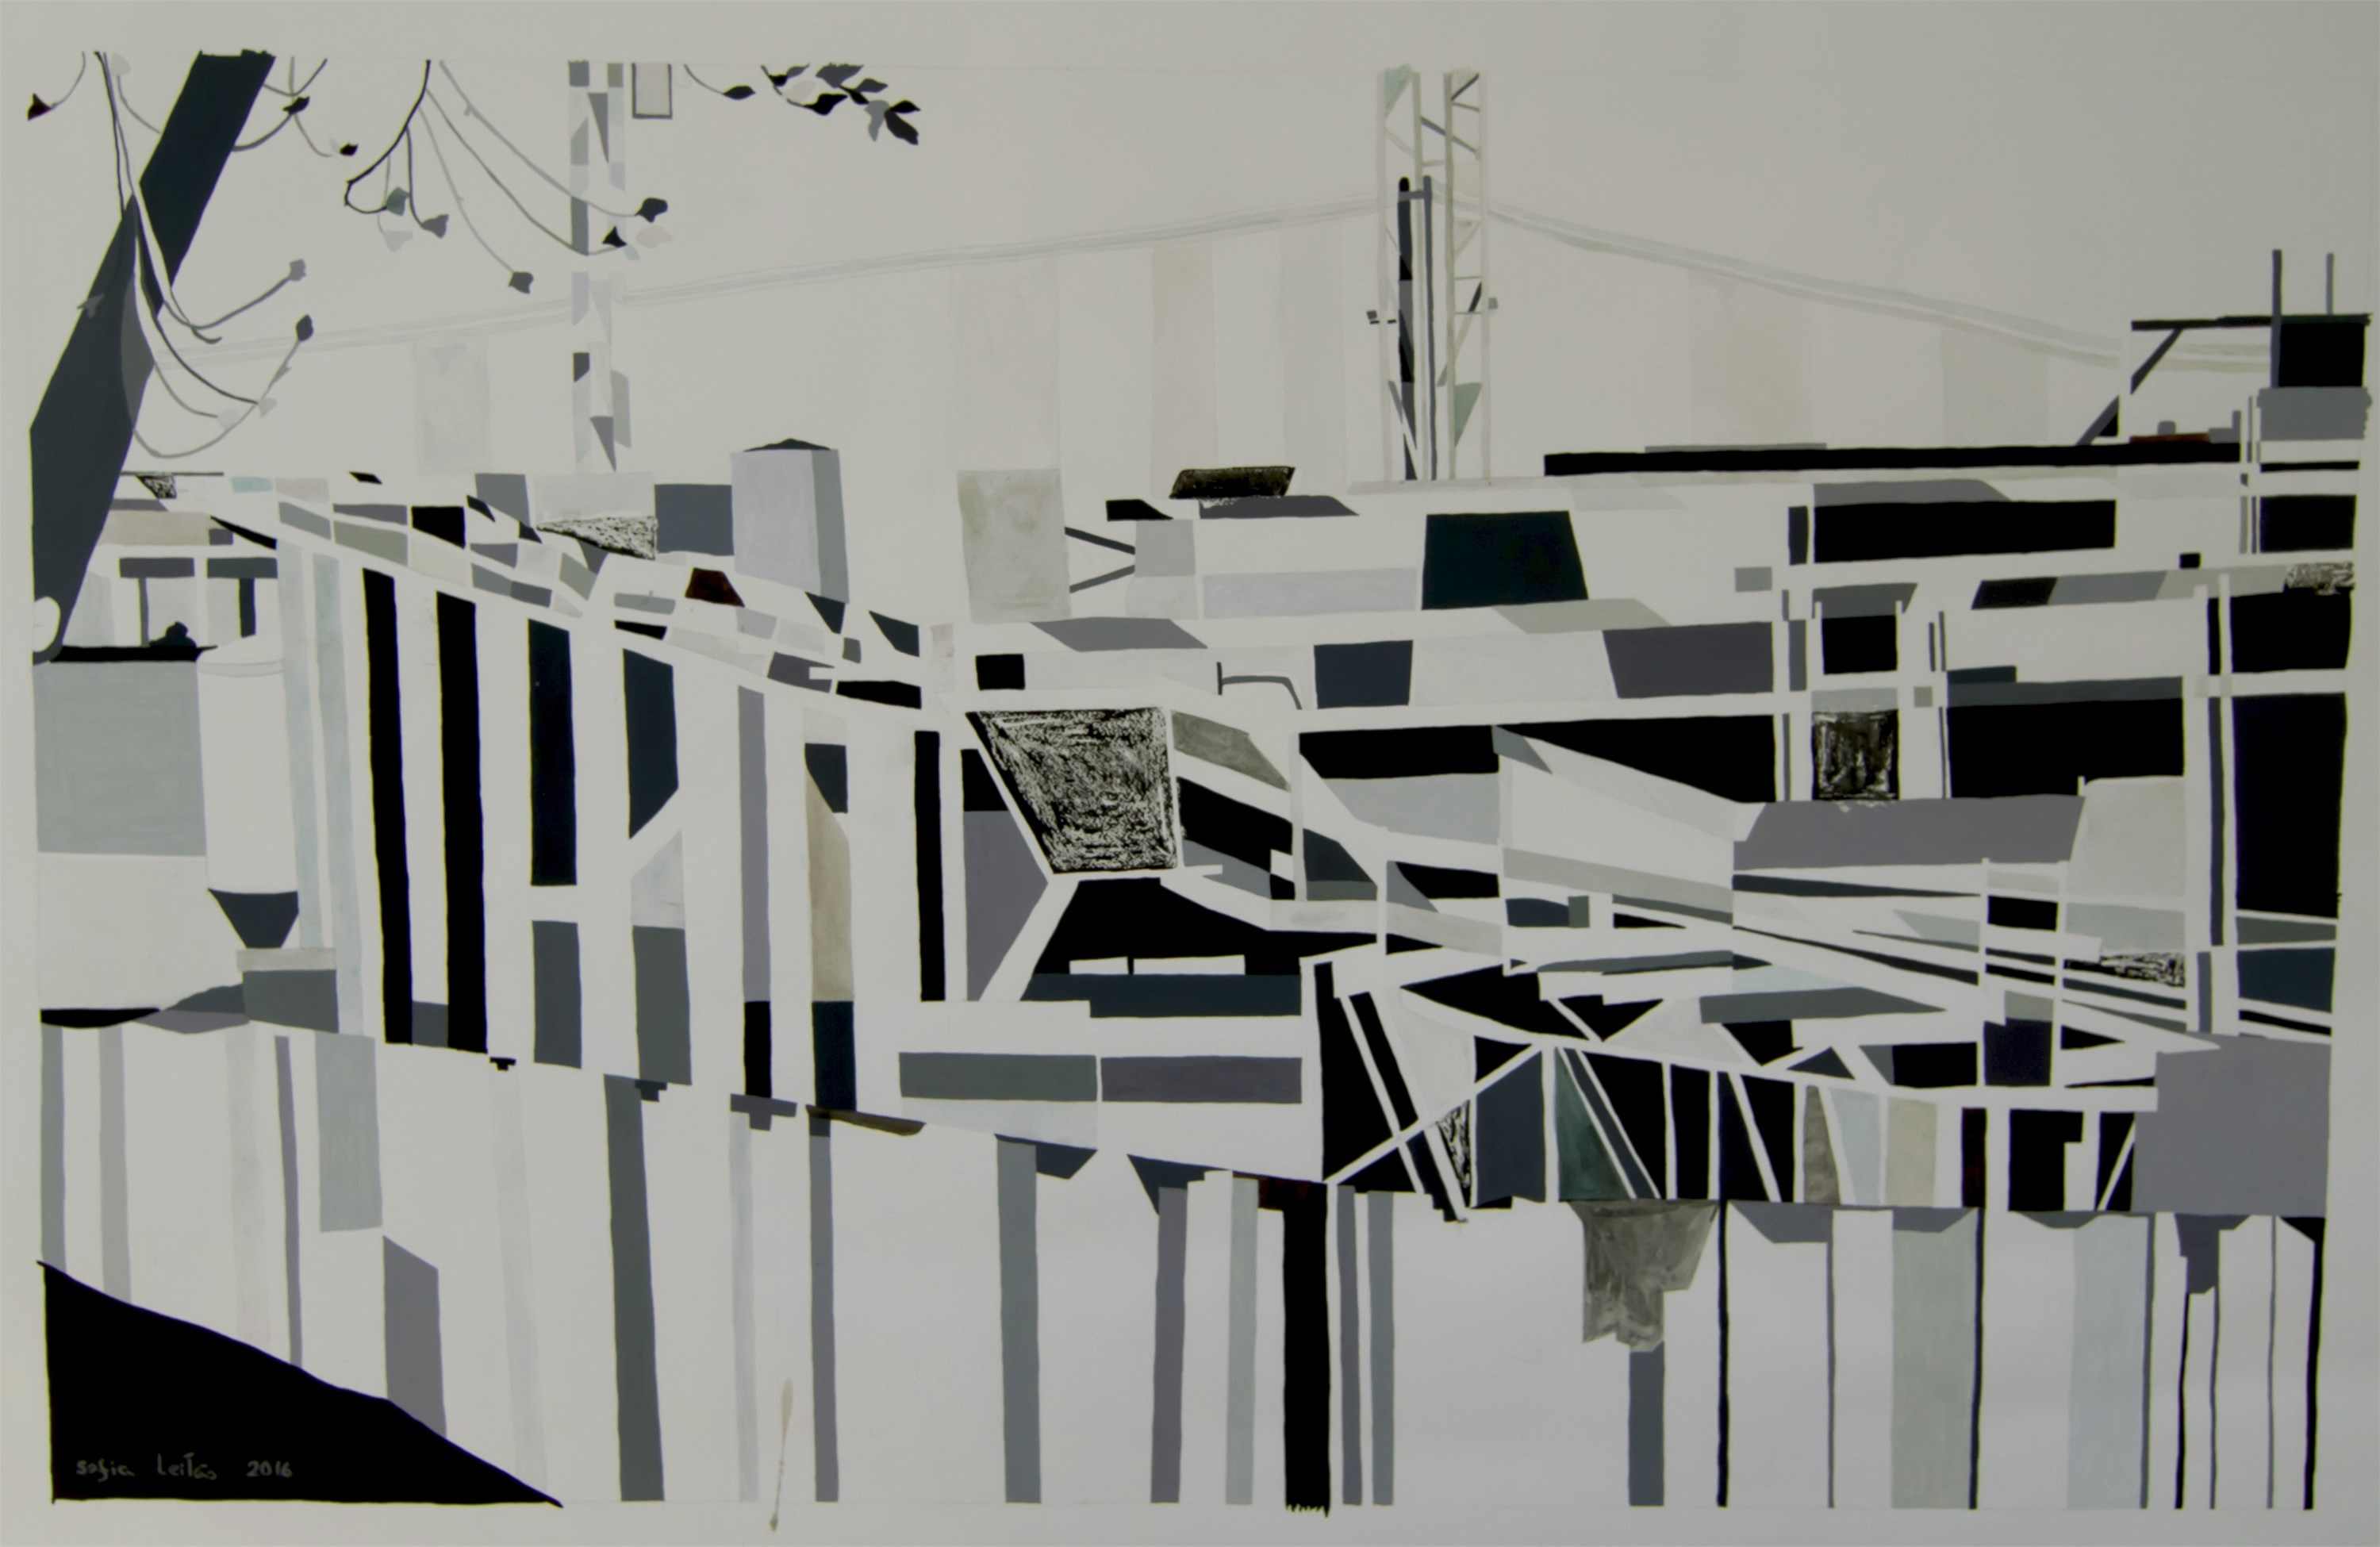 Under construction I, original Geometric Mixed Technique Painting by Sofia Leitão & Henry Nesbitt